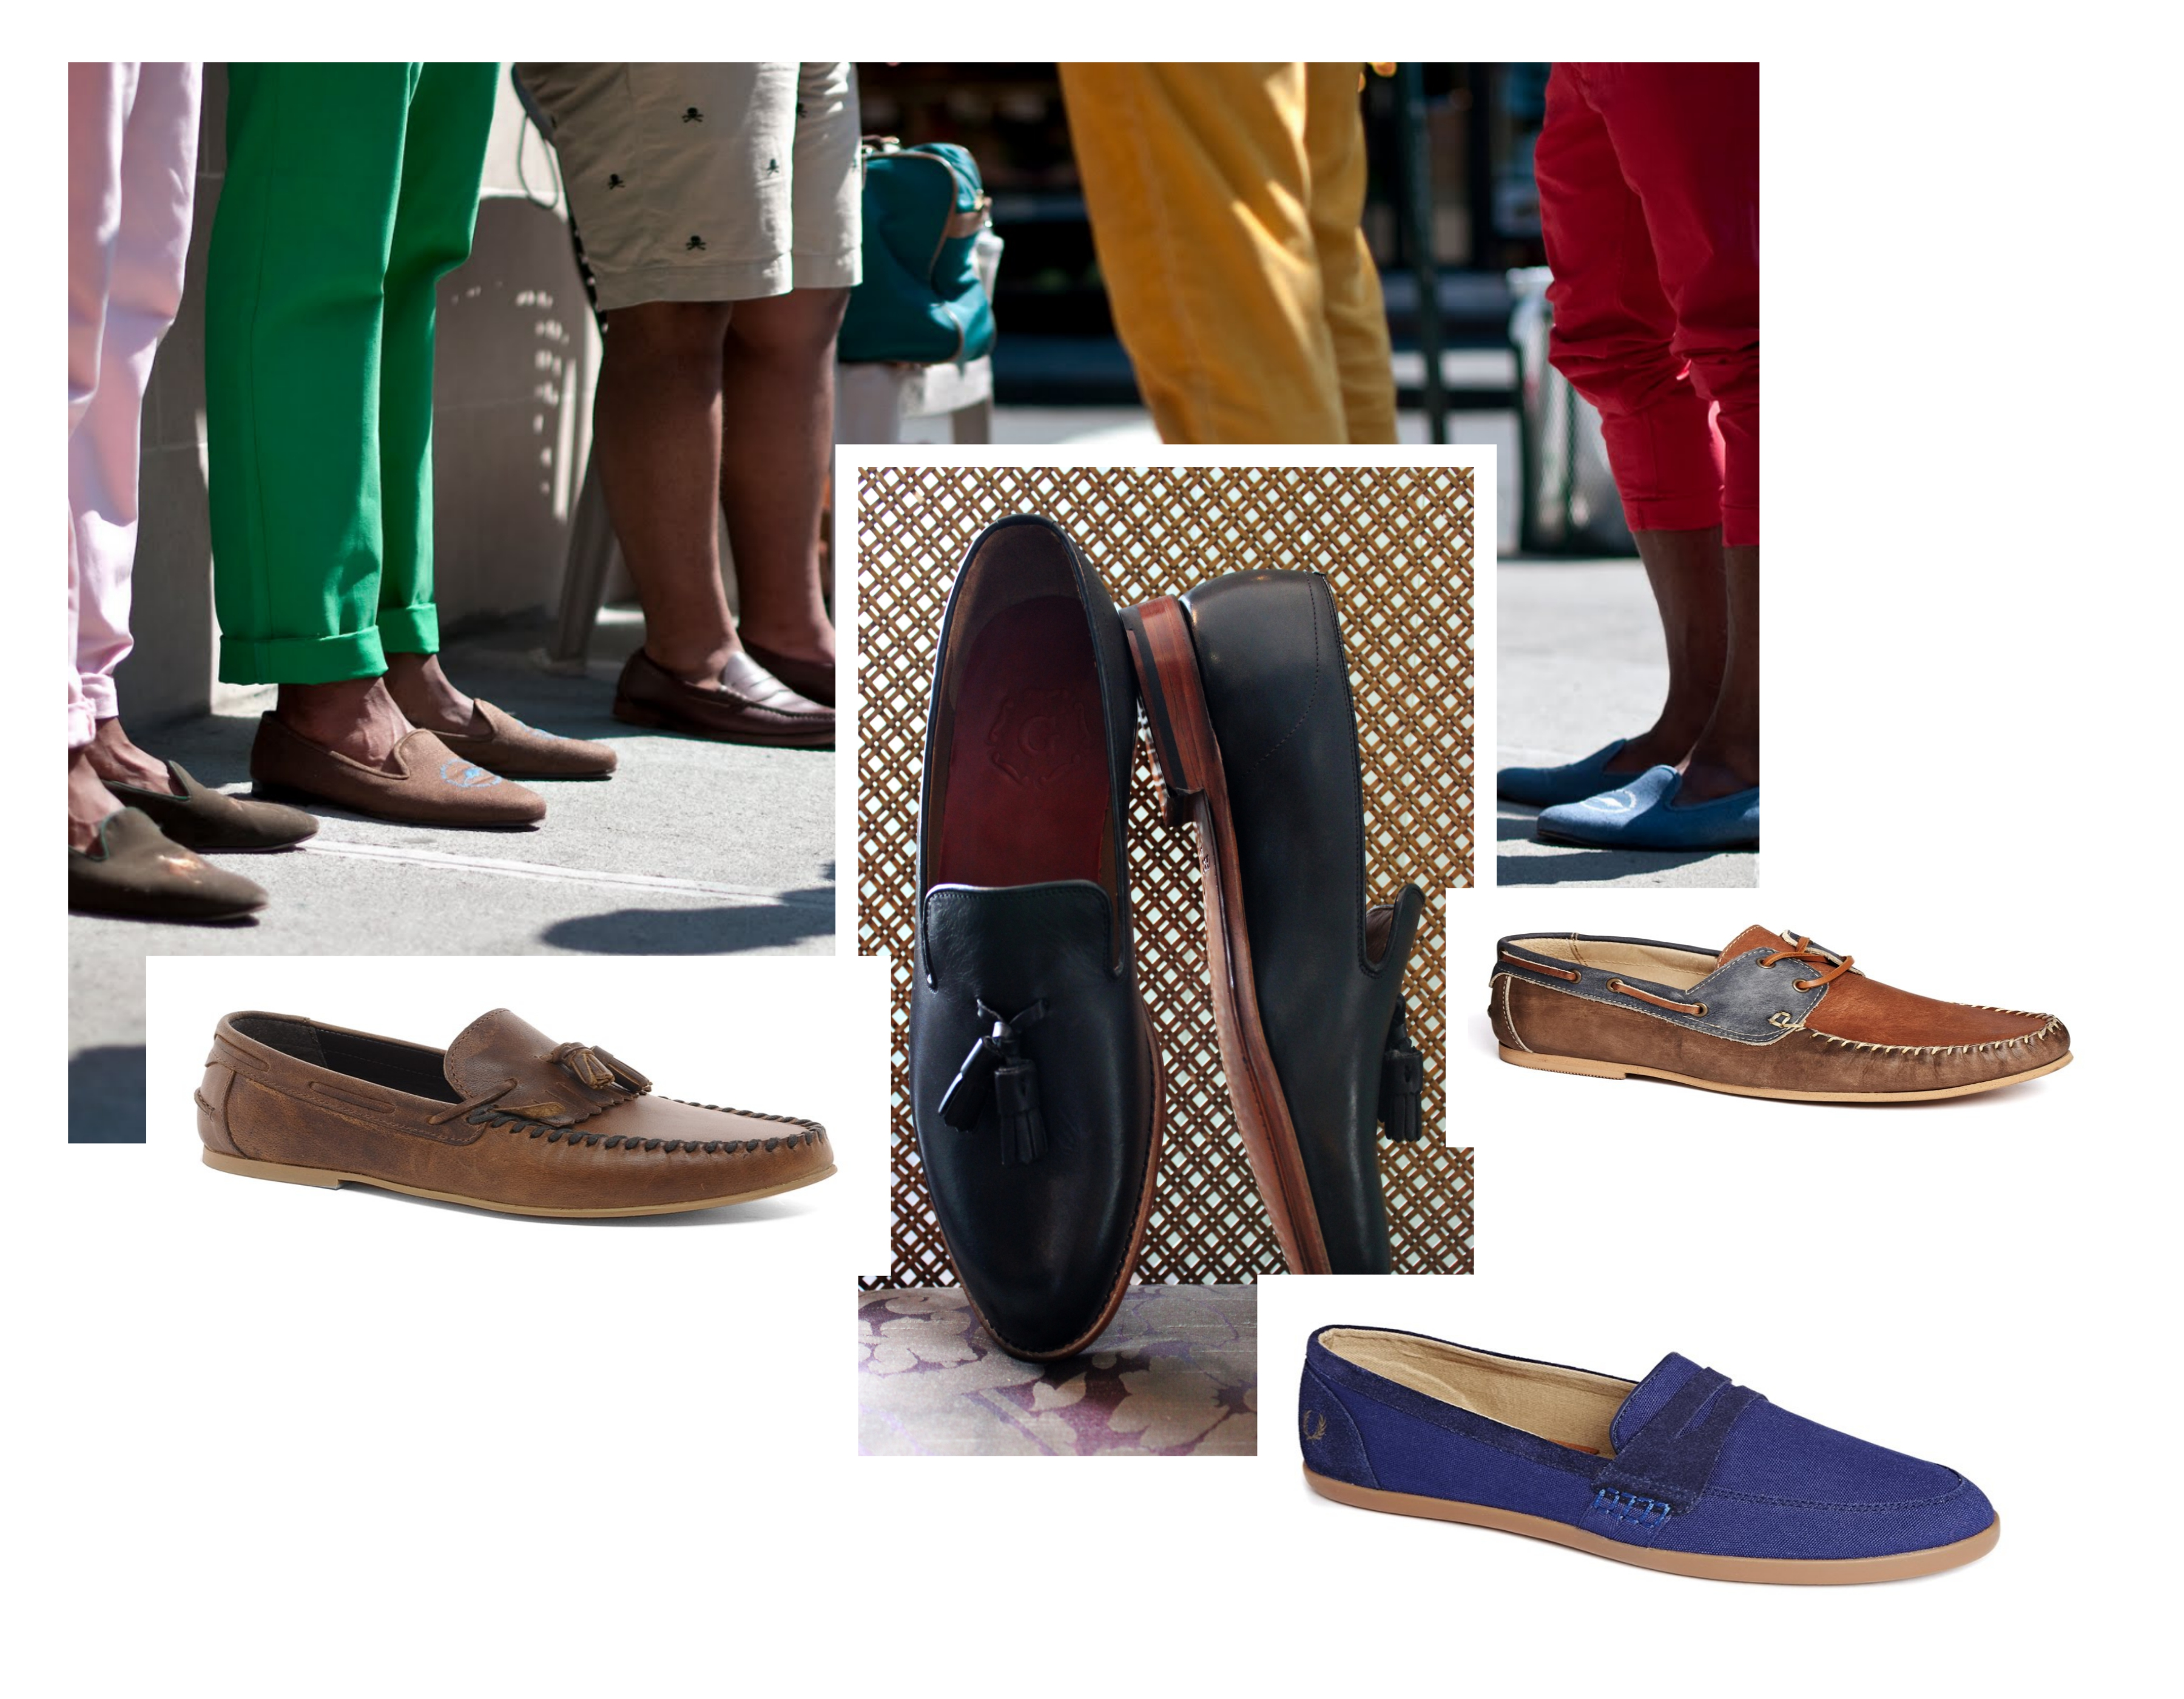 loafers en moccasin Collage